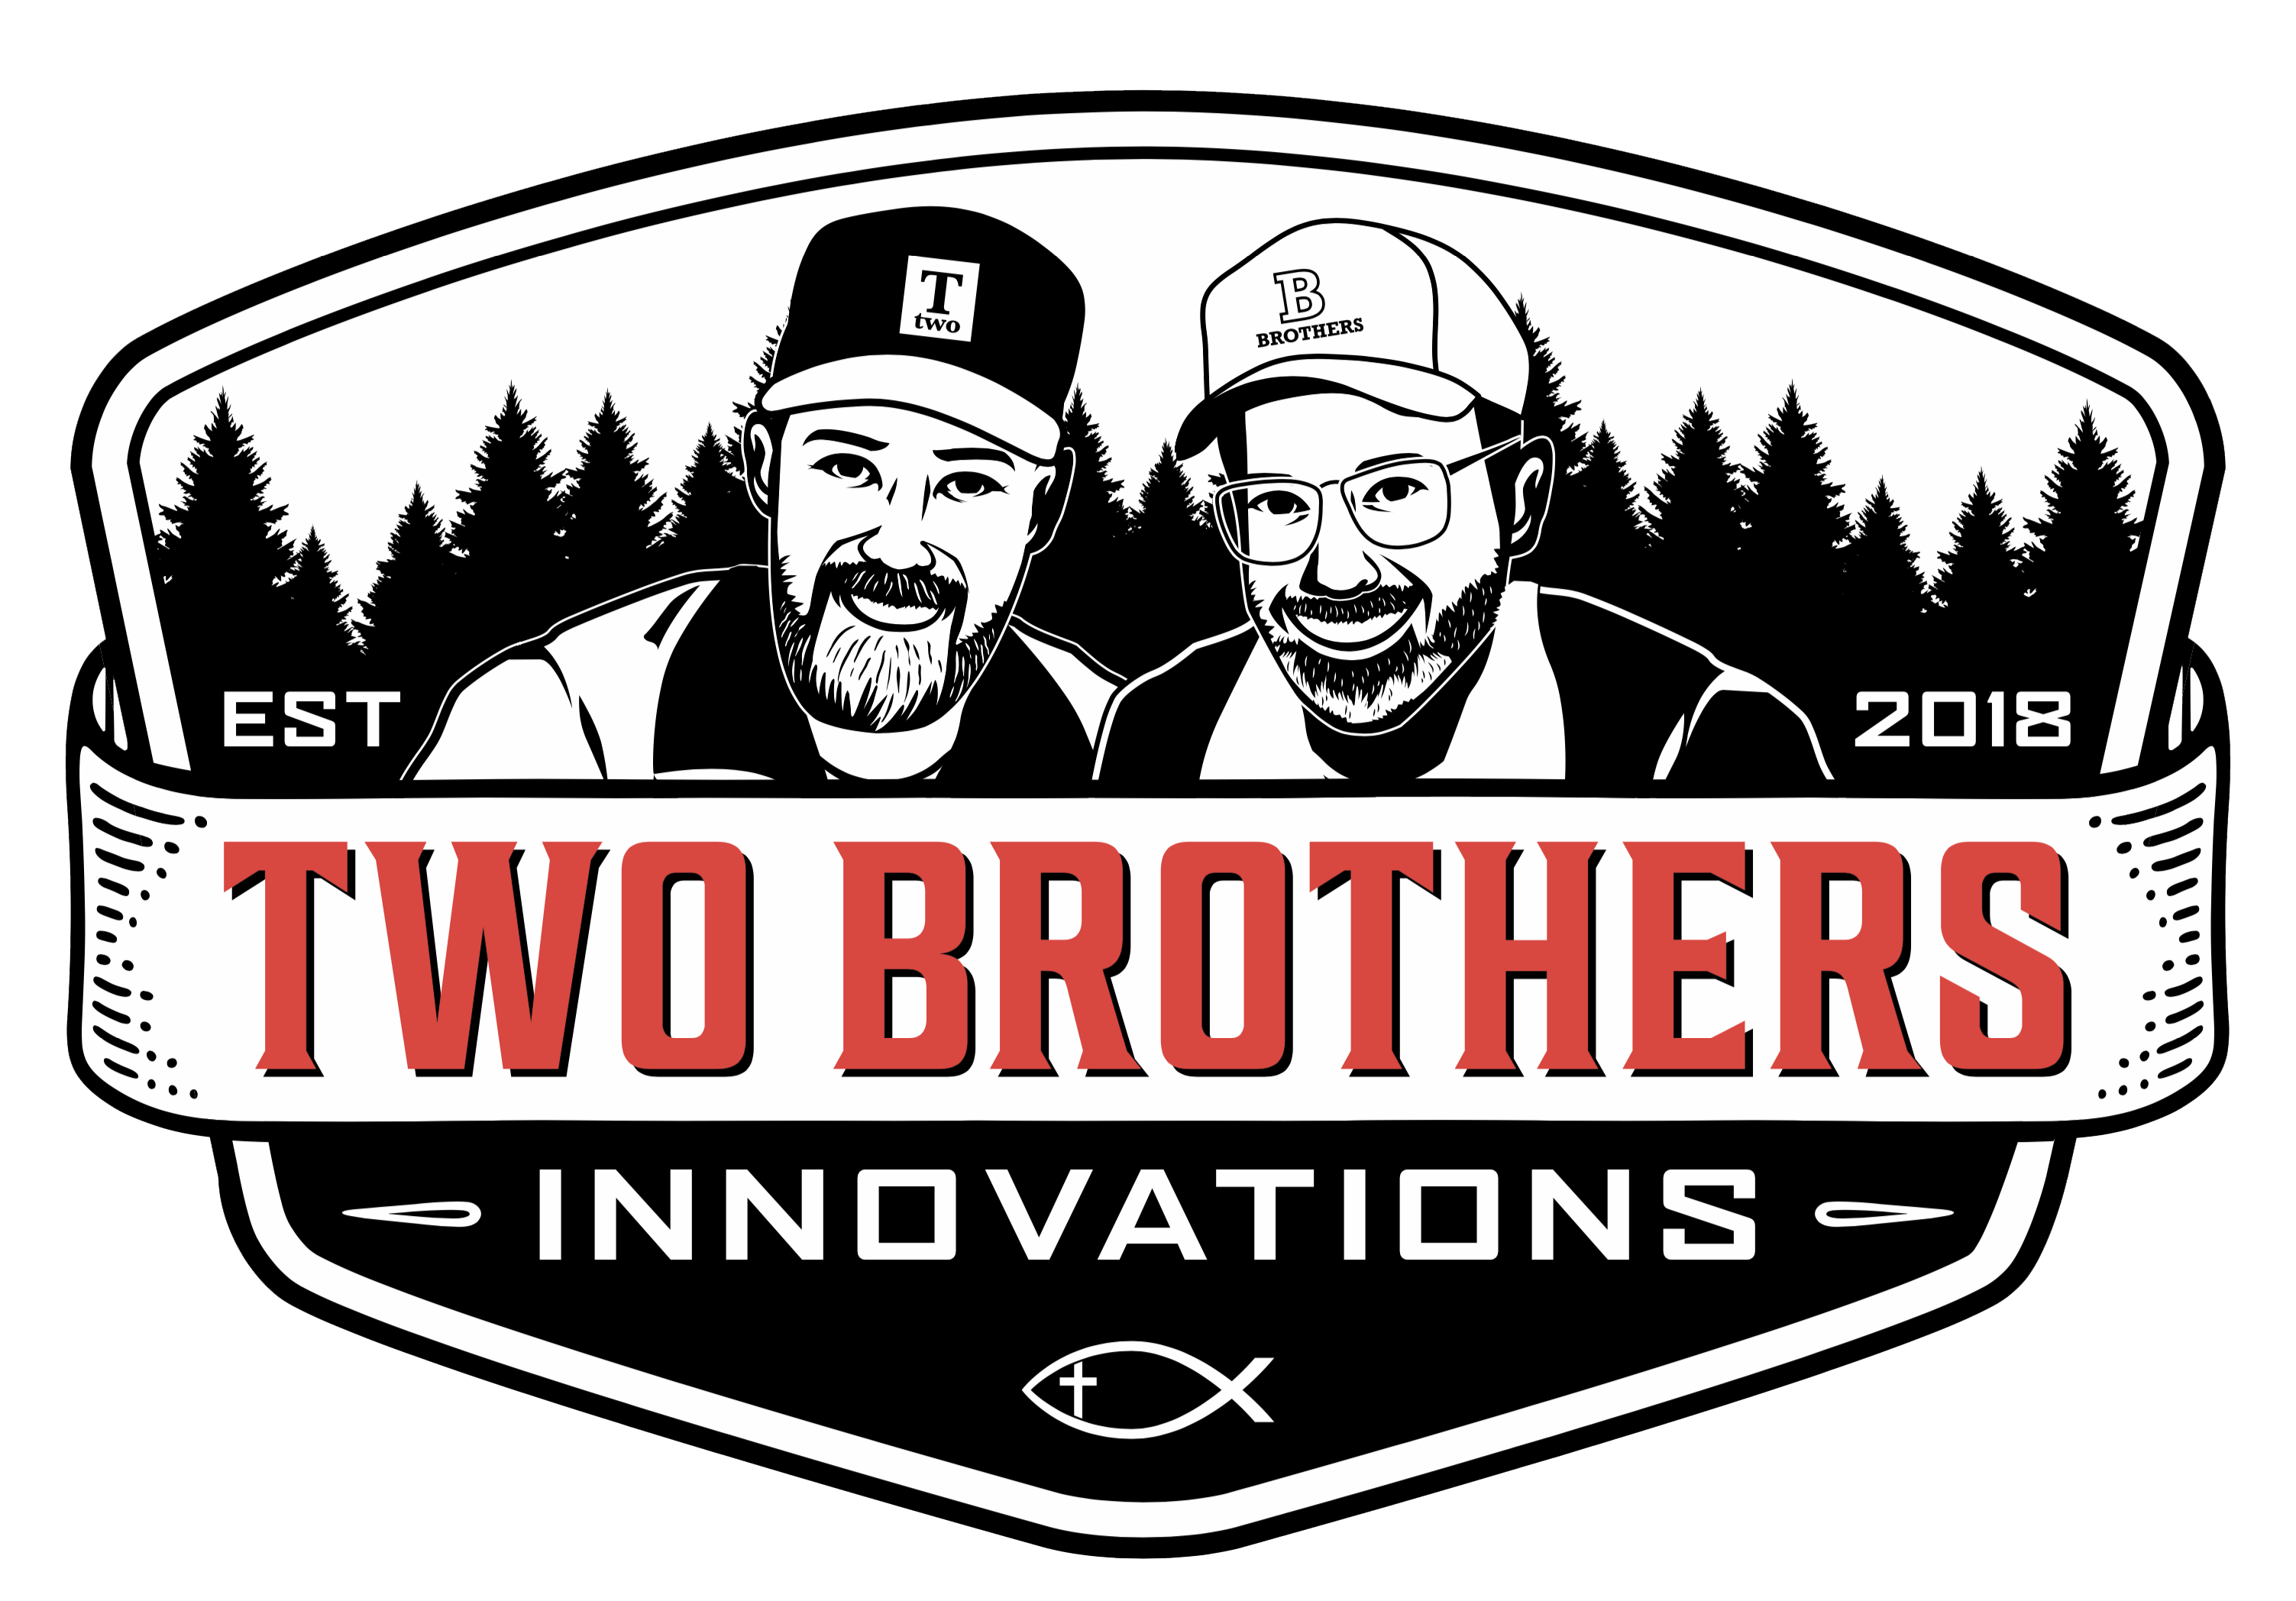 Two Brothers Innovations